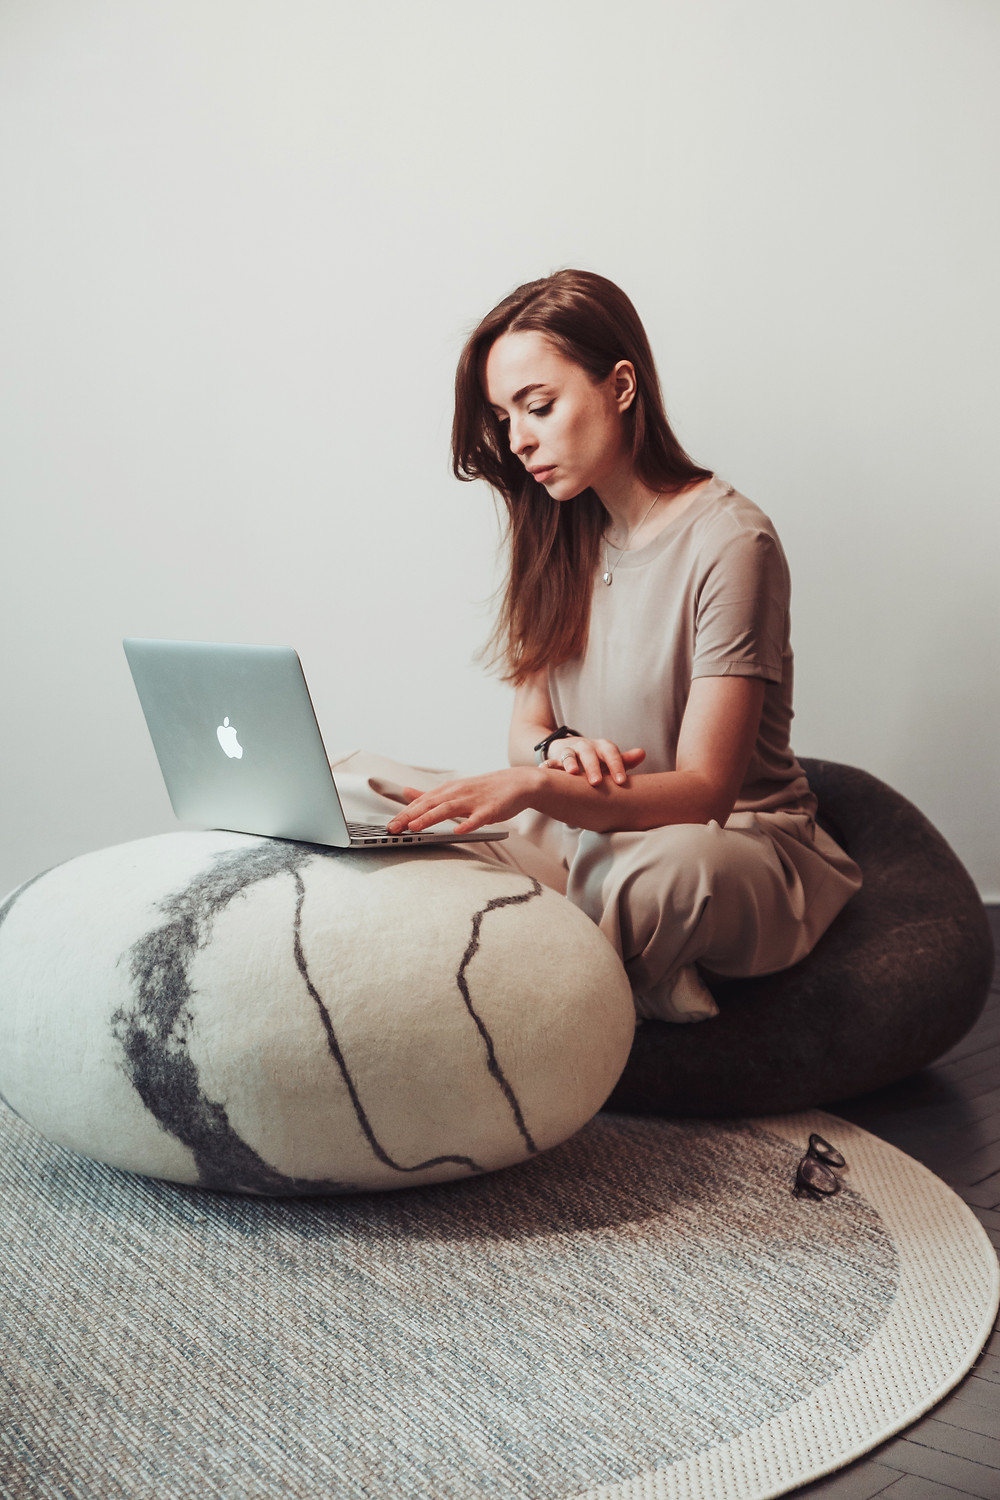 A girl works in a coworking at a laptop. There are interior soft stones by KATSU around her. The stones handmade from natural wool. Woolstones, ottoman rocks. Pouf and pillow handmade from natural wool, look like real stone. Soft interior stones.